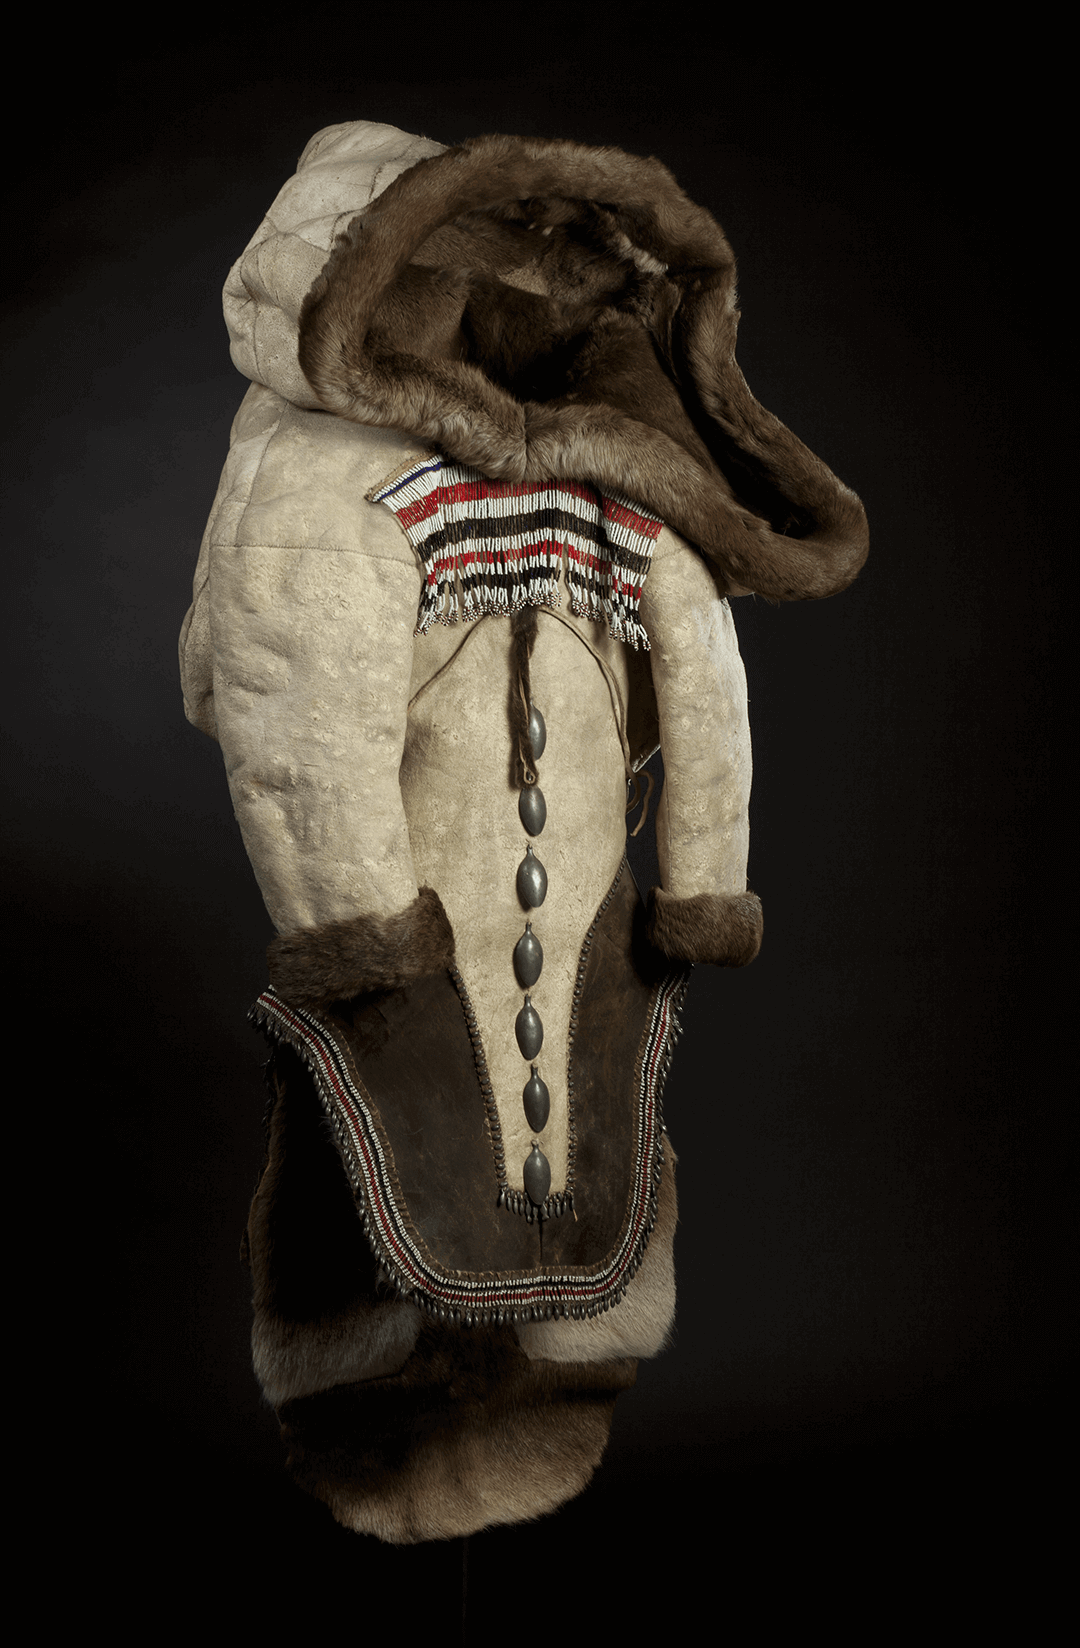 Photograph of women's clothing called Amauti by the Inuit. Made of caribou and ringed seal skins, it is fur-lined.